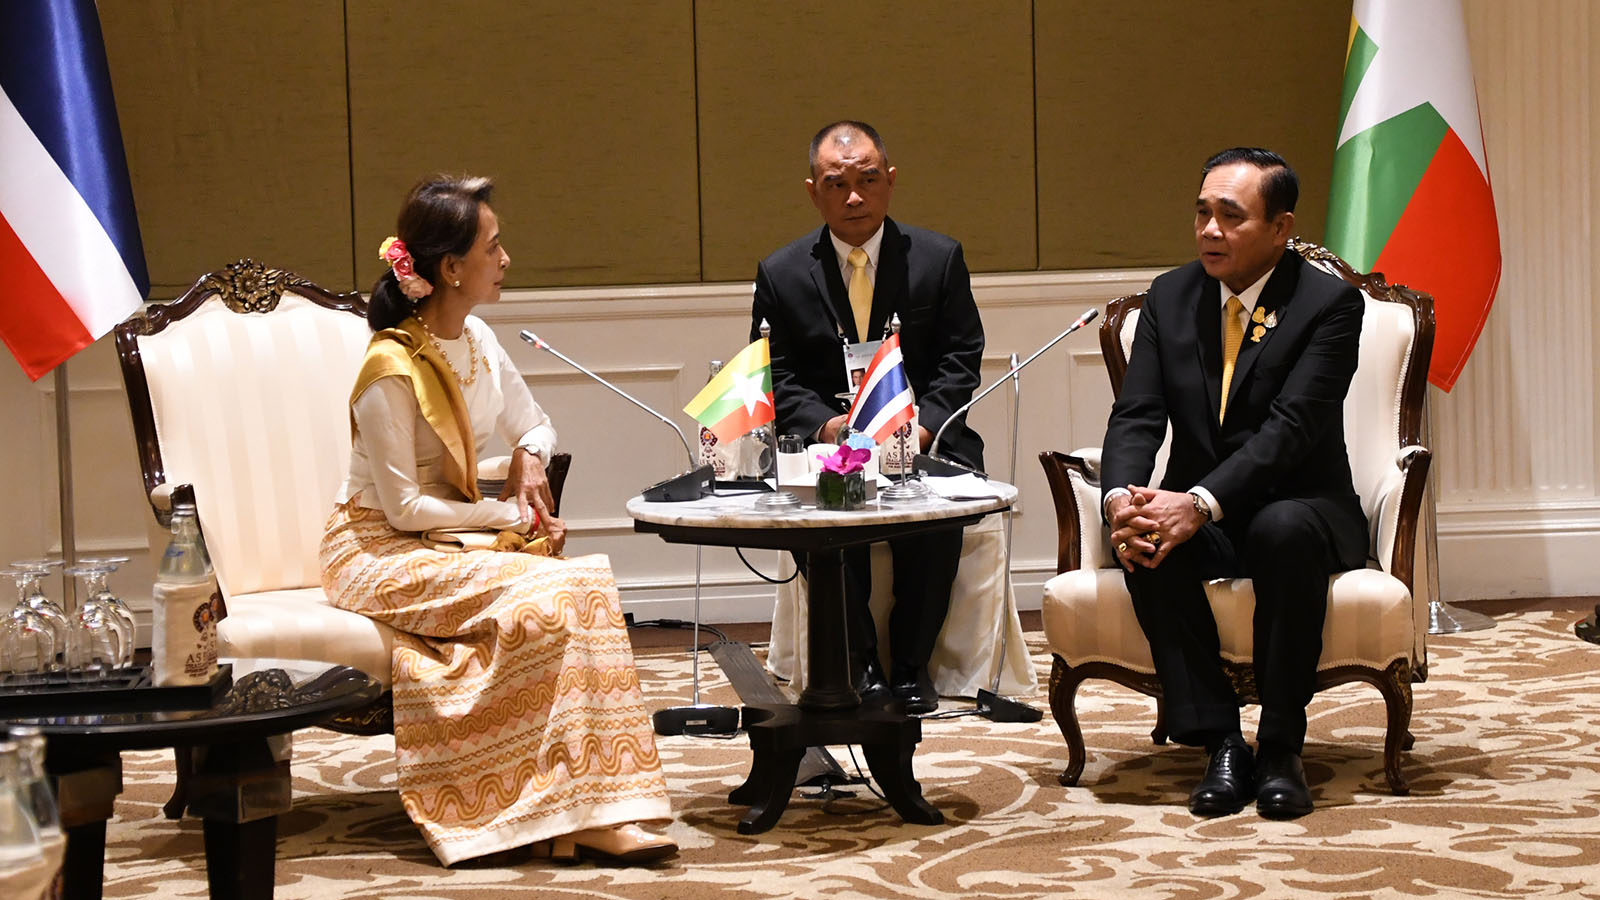 State Counsellor Daw Aung San Suu Kyi meets with Prime Minister of the Kingdom of Thailand General Prayut Chan-o-cha (Ret.) at Athenee Tower, Bangkok, Thailand yesterday. Photo : MNA